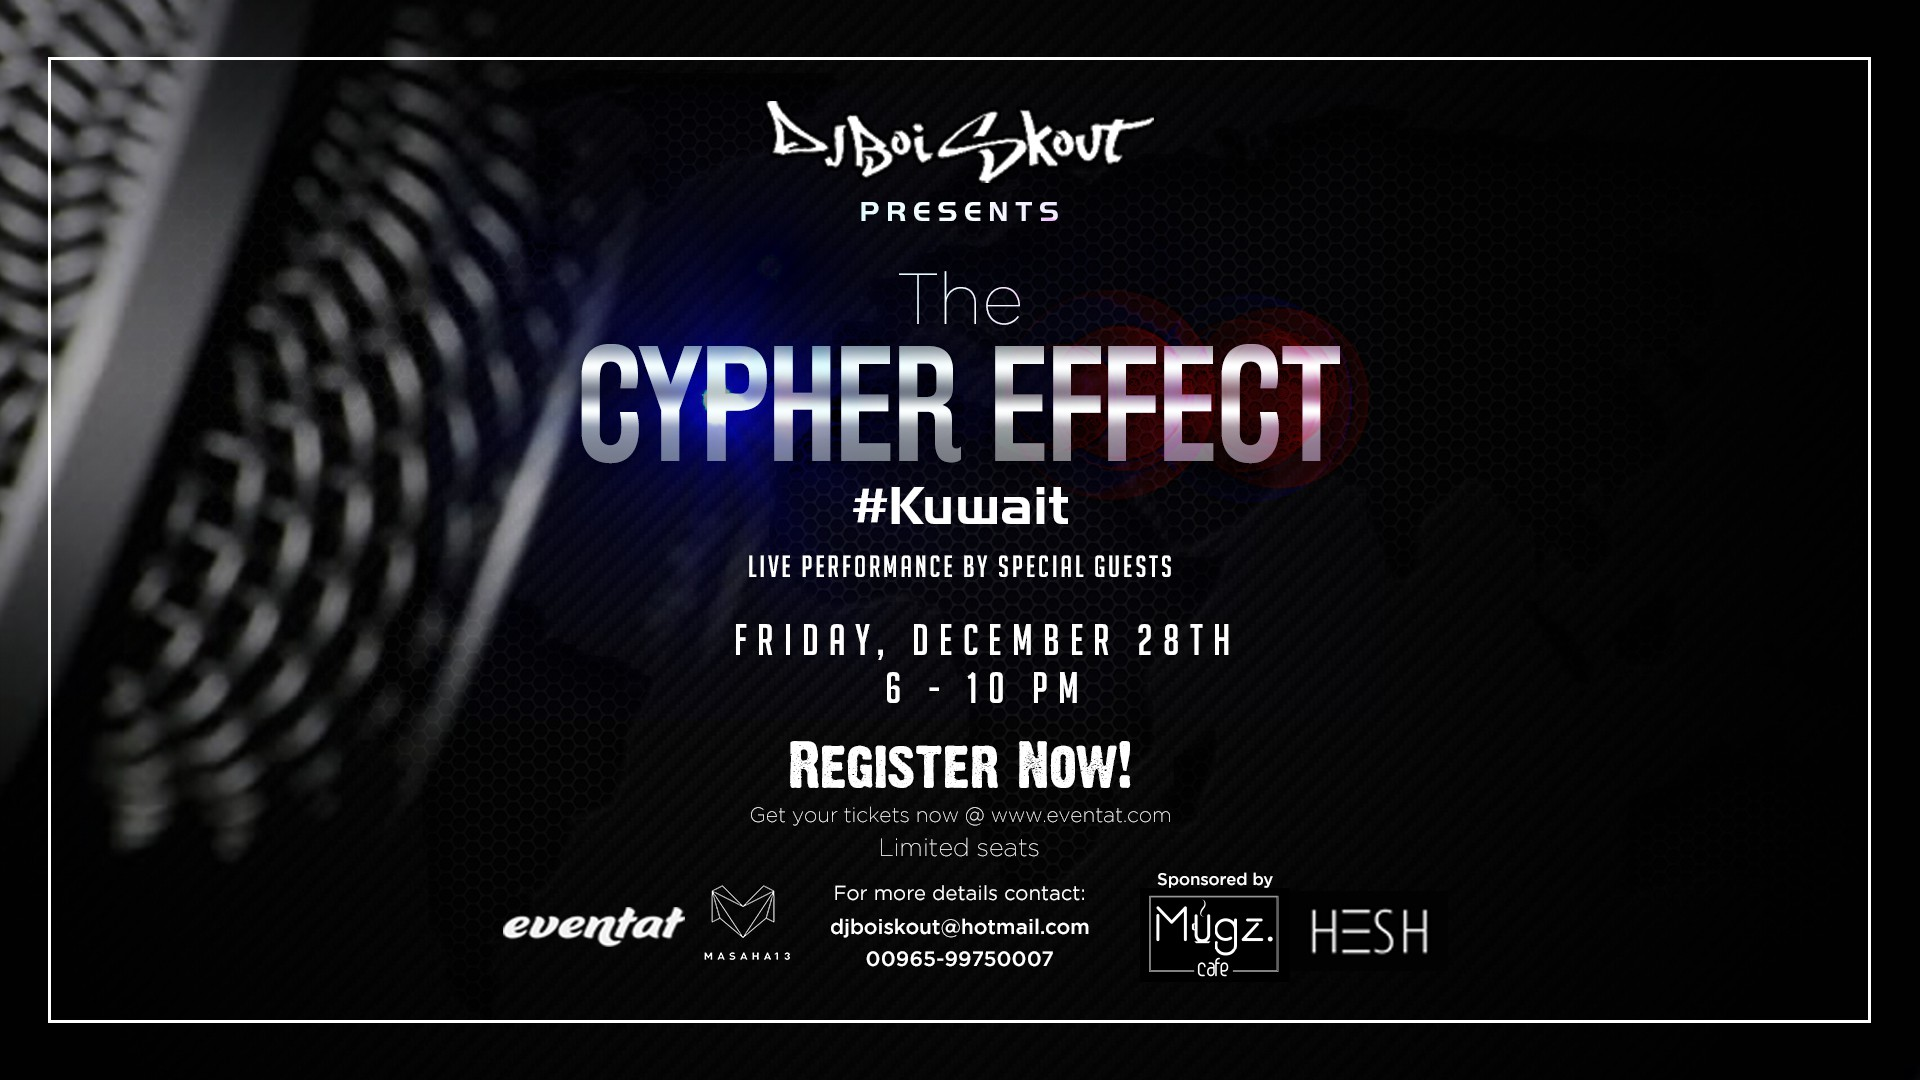 The Cypher Effect